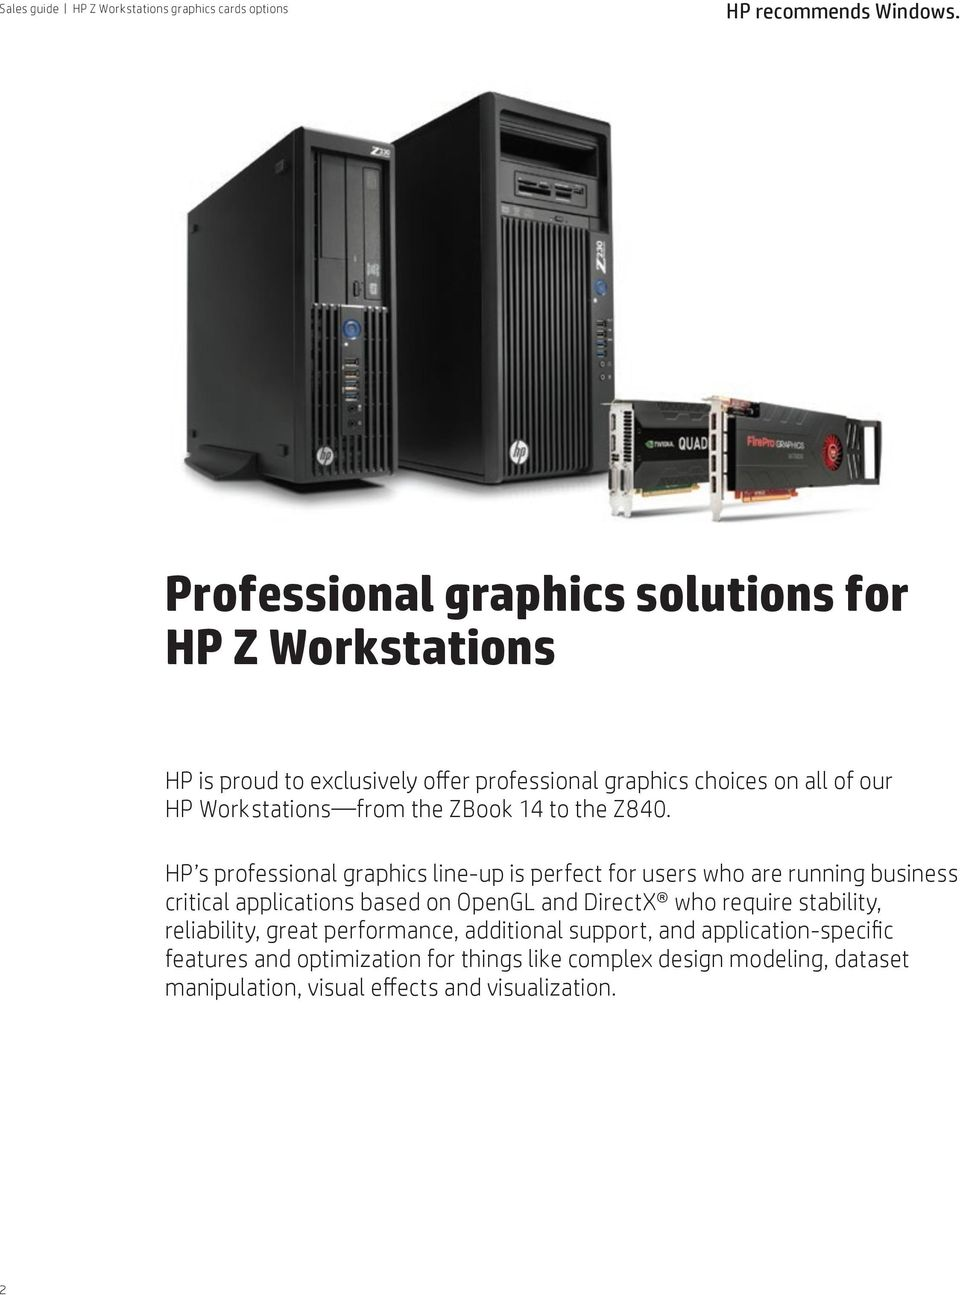 HP Z Workstations graphics card options - PDF